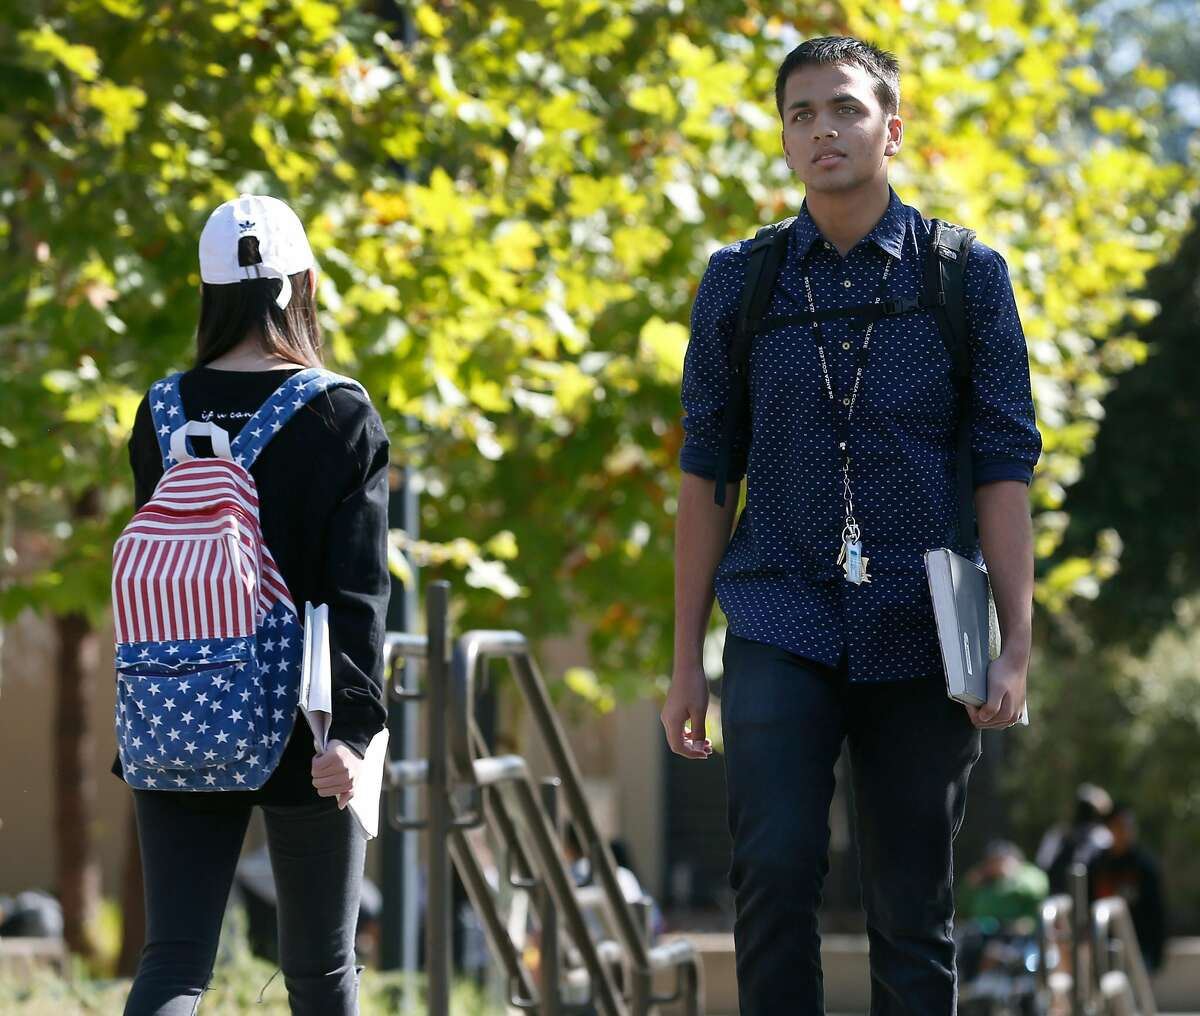 Neeraj Dharmadhikari, a computer science major, walks to his next class at De Anza College in Cupertino, Calif. on Tuesday, Oct. 3, 2017.